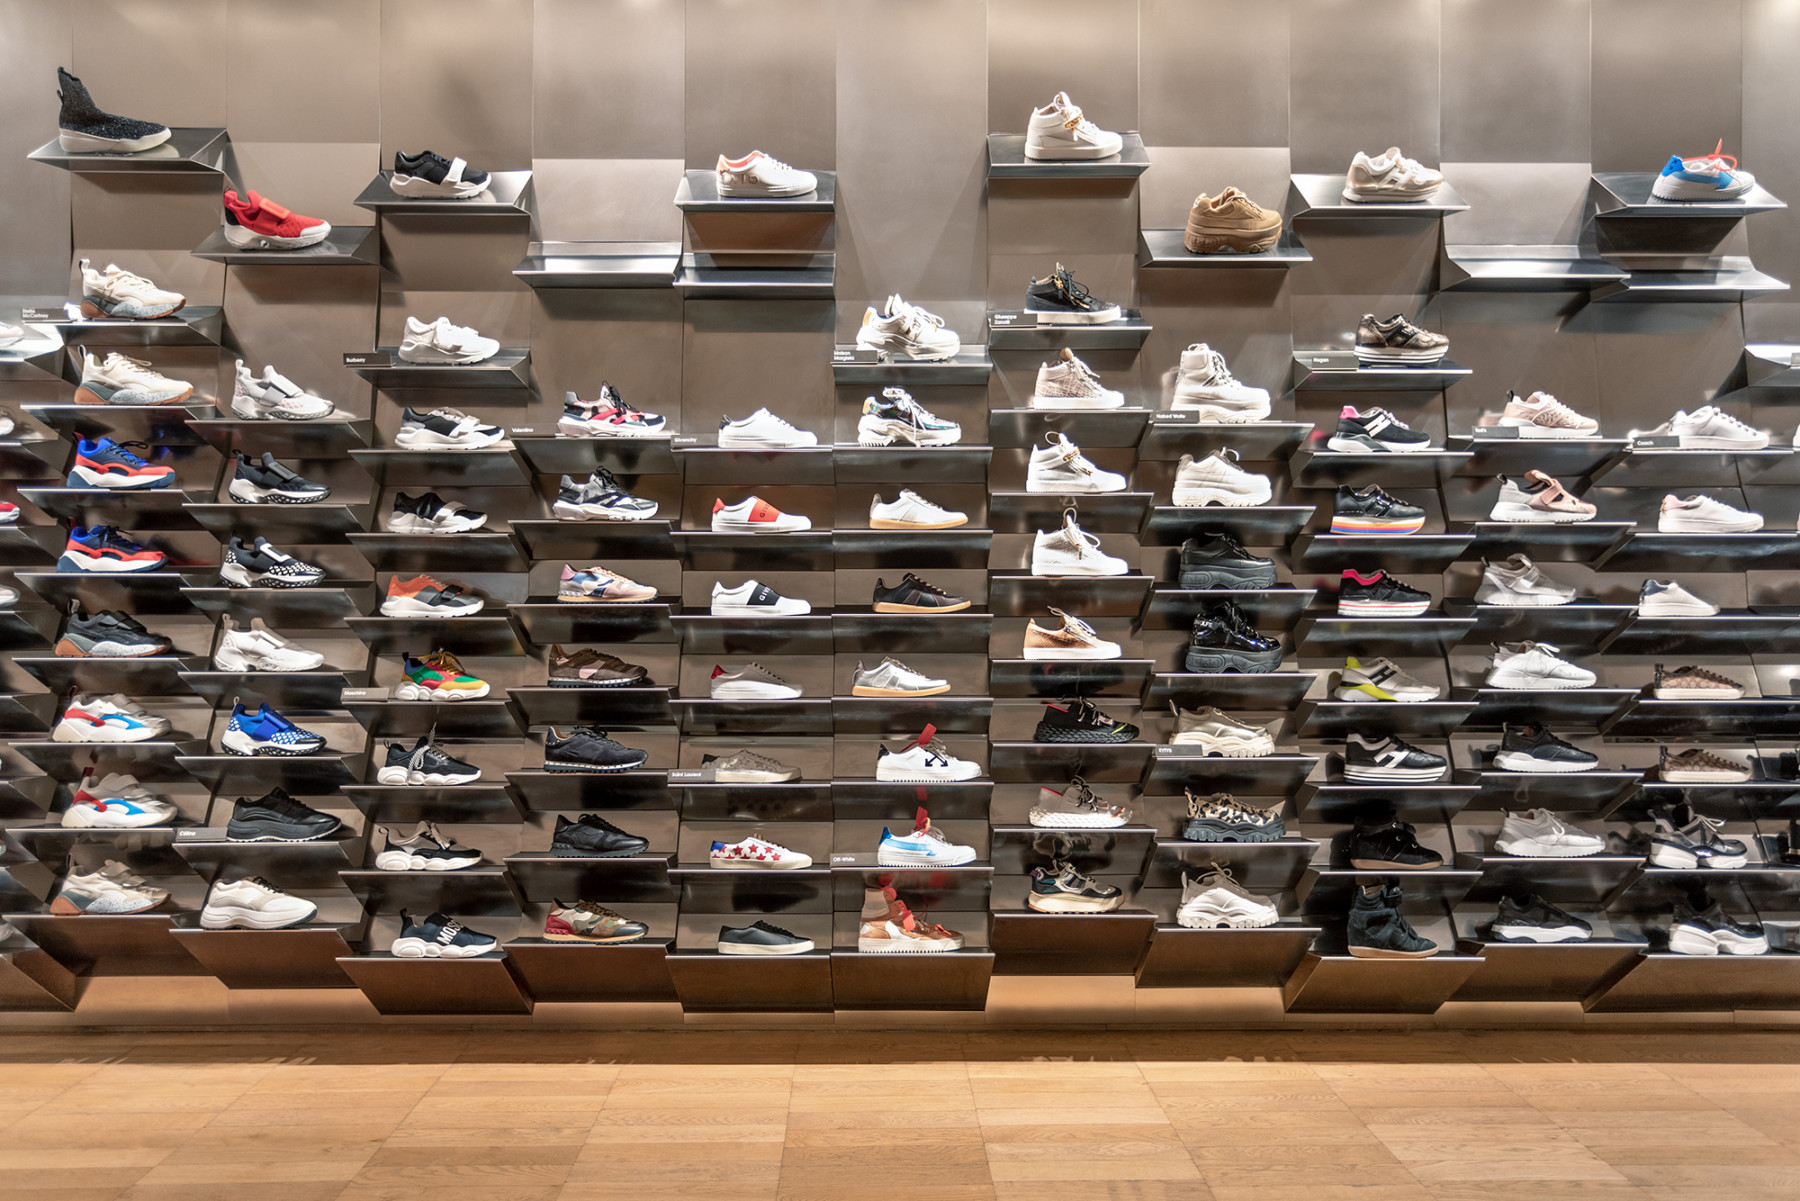 jamie-fobert-architects-selfridges-shoe-galleries-luxury-retail-concept-gallery-design-olivier-hess-photos-sneaker-wall2